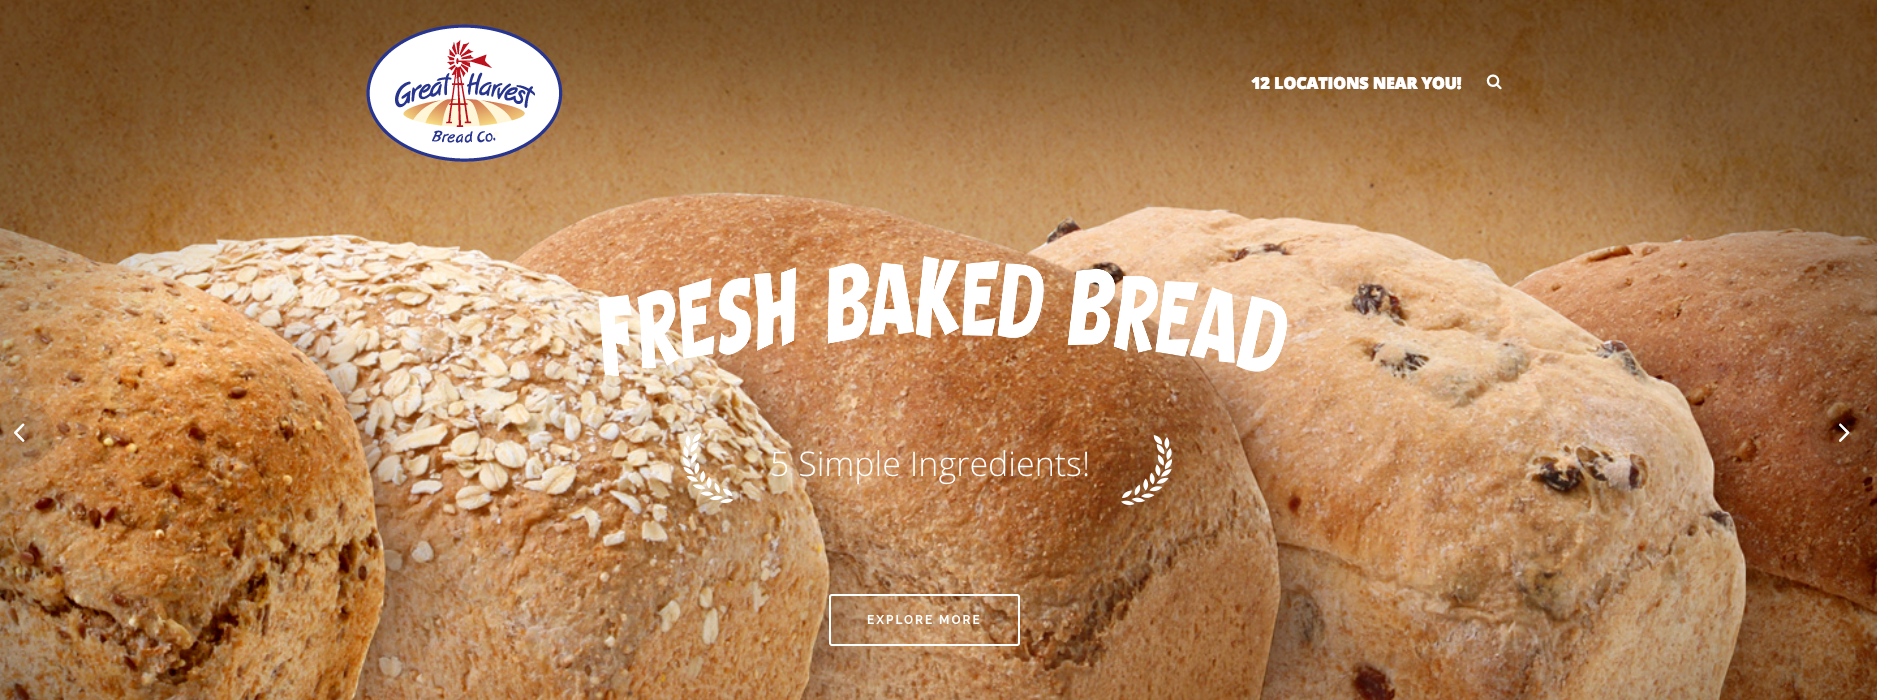 New Great Harvest Bread Co. Website!